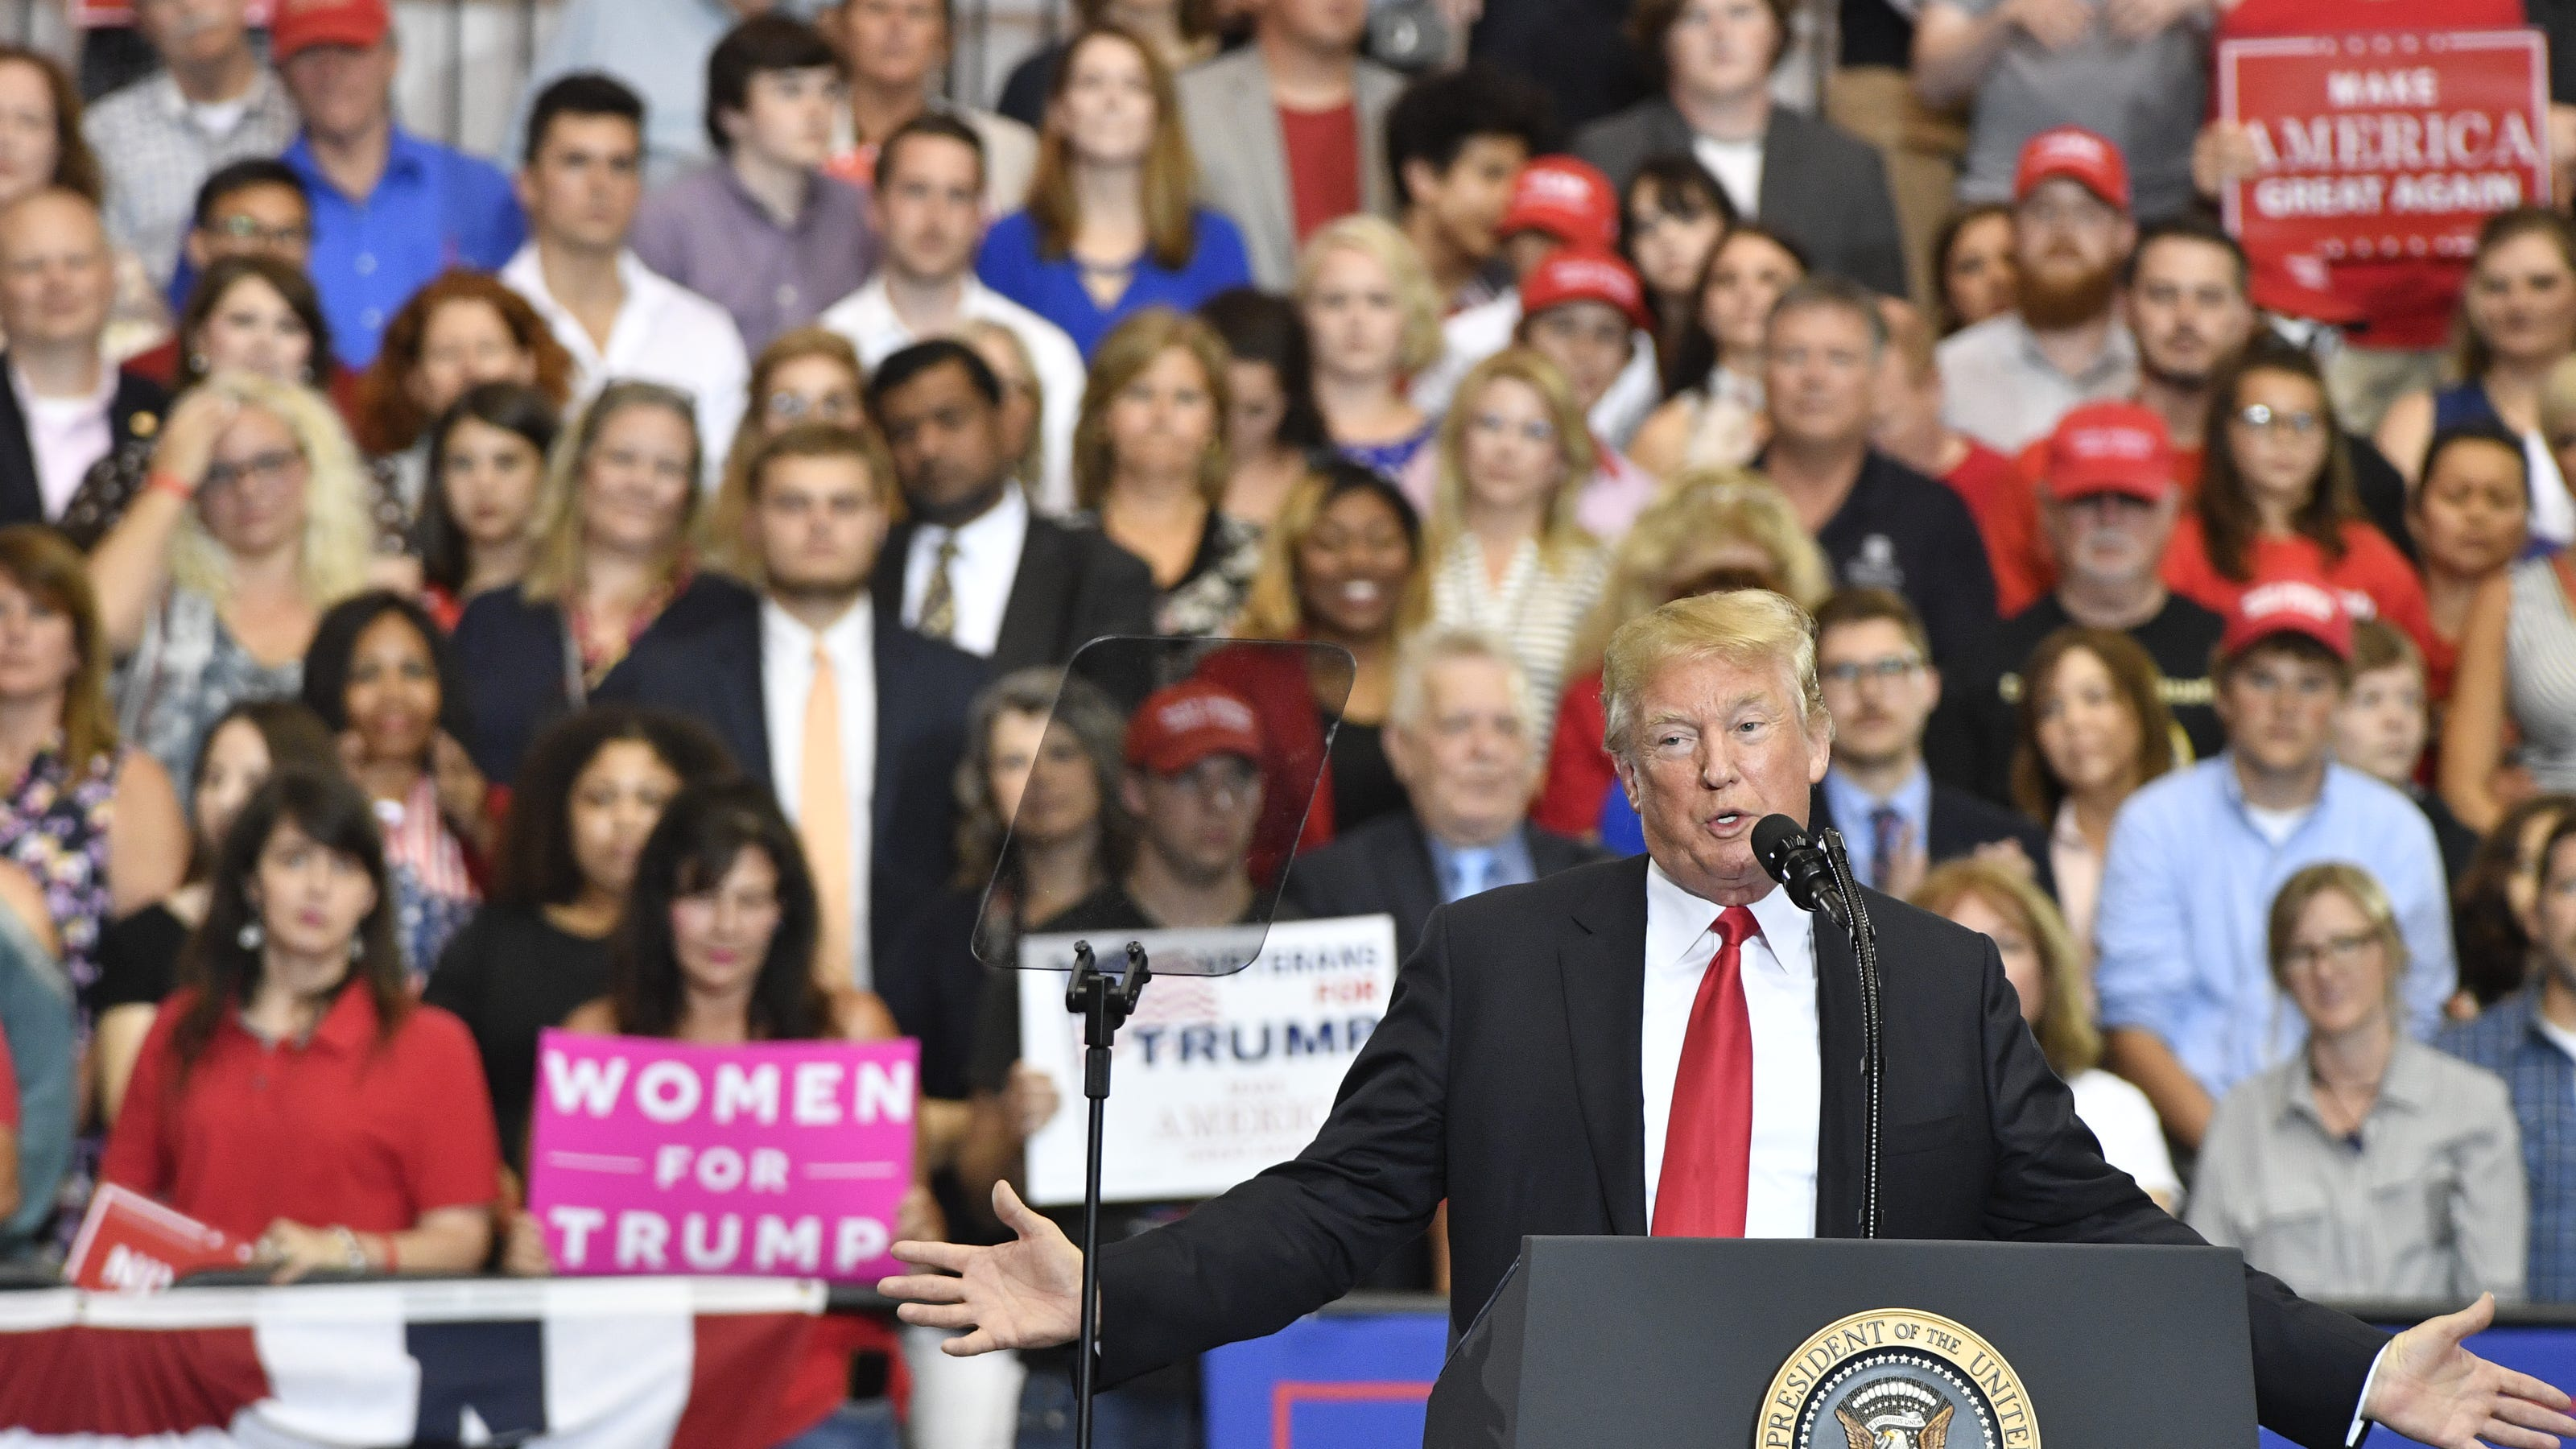 Donald Trump Says Bredesen Is A Tool At Blackburn Rally